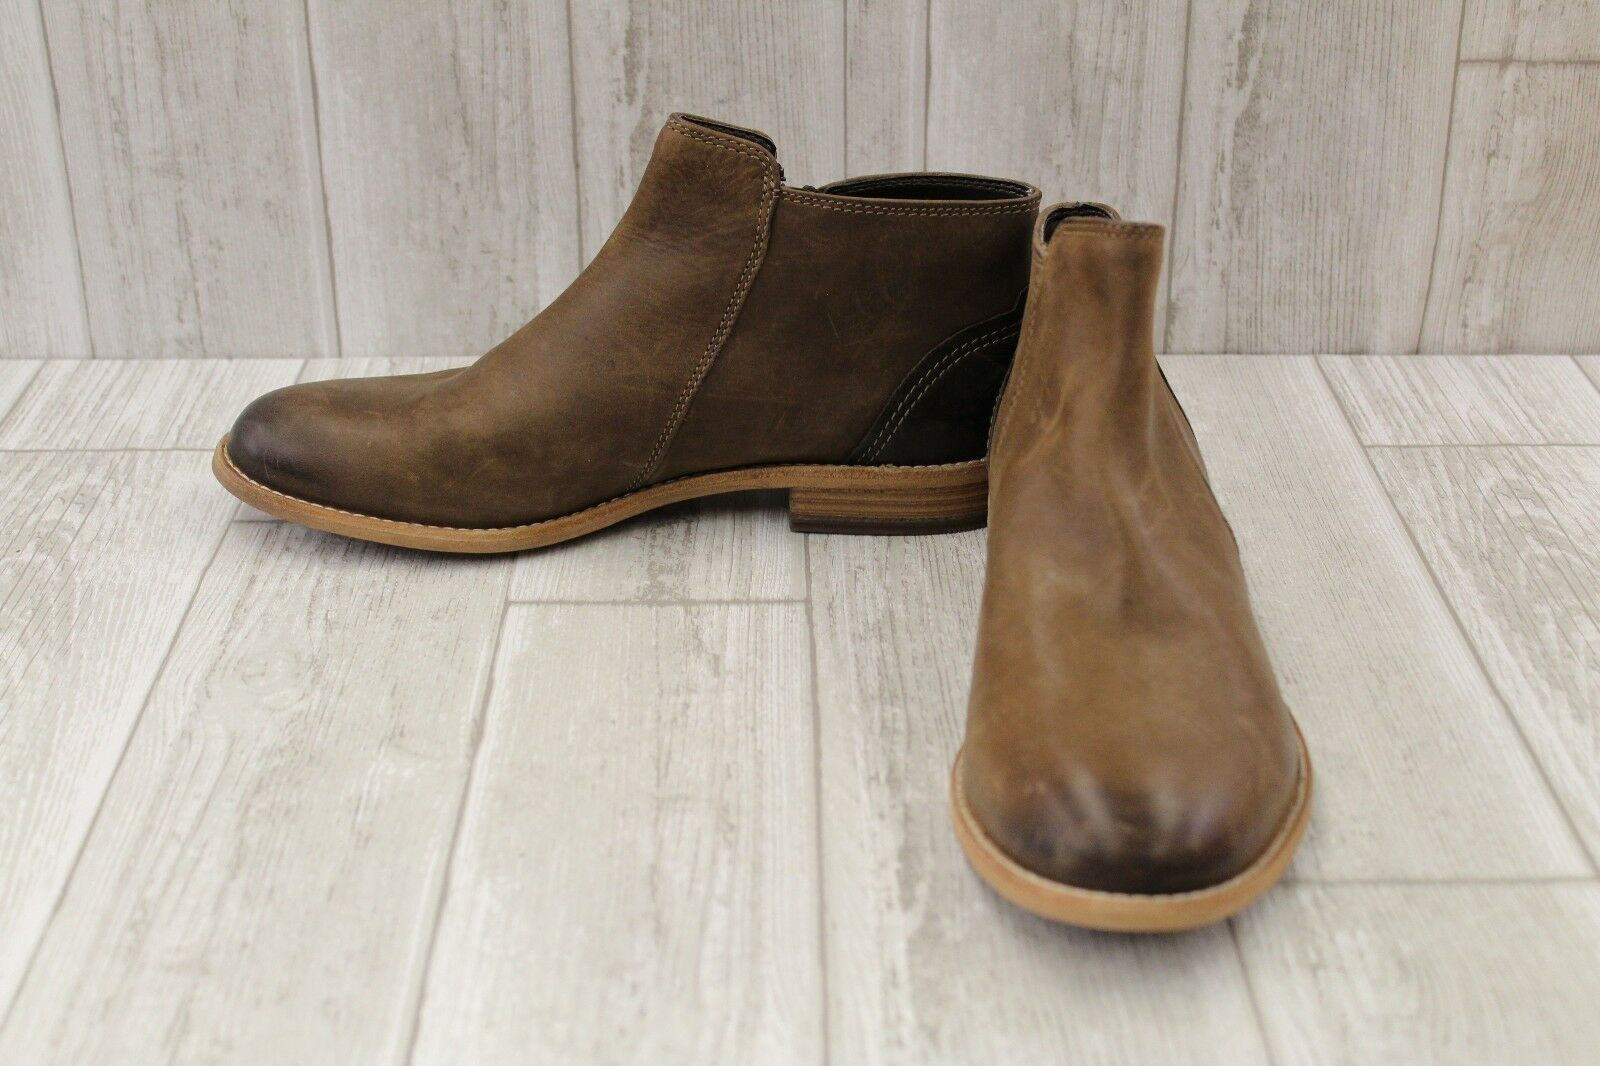 Clarks Maypearl Juno Ankle Boots - Women's Size 10 M, Brown (REPAIR)